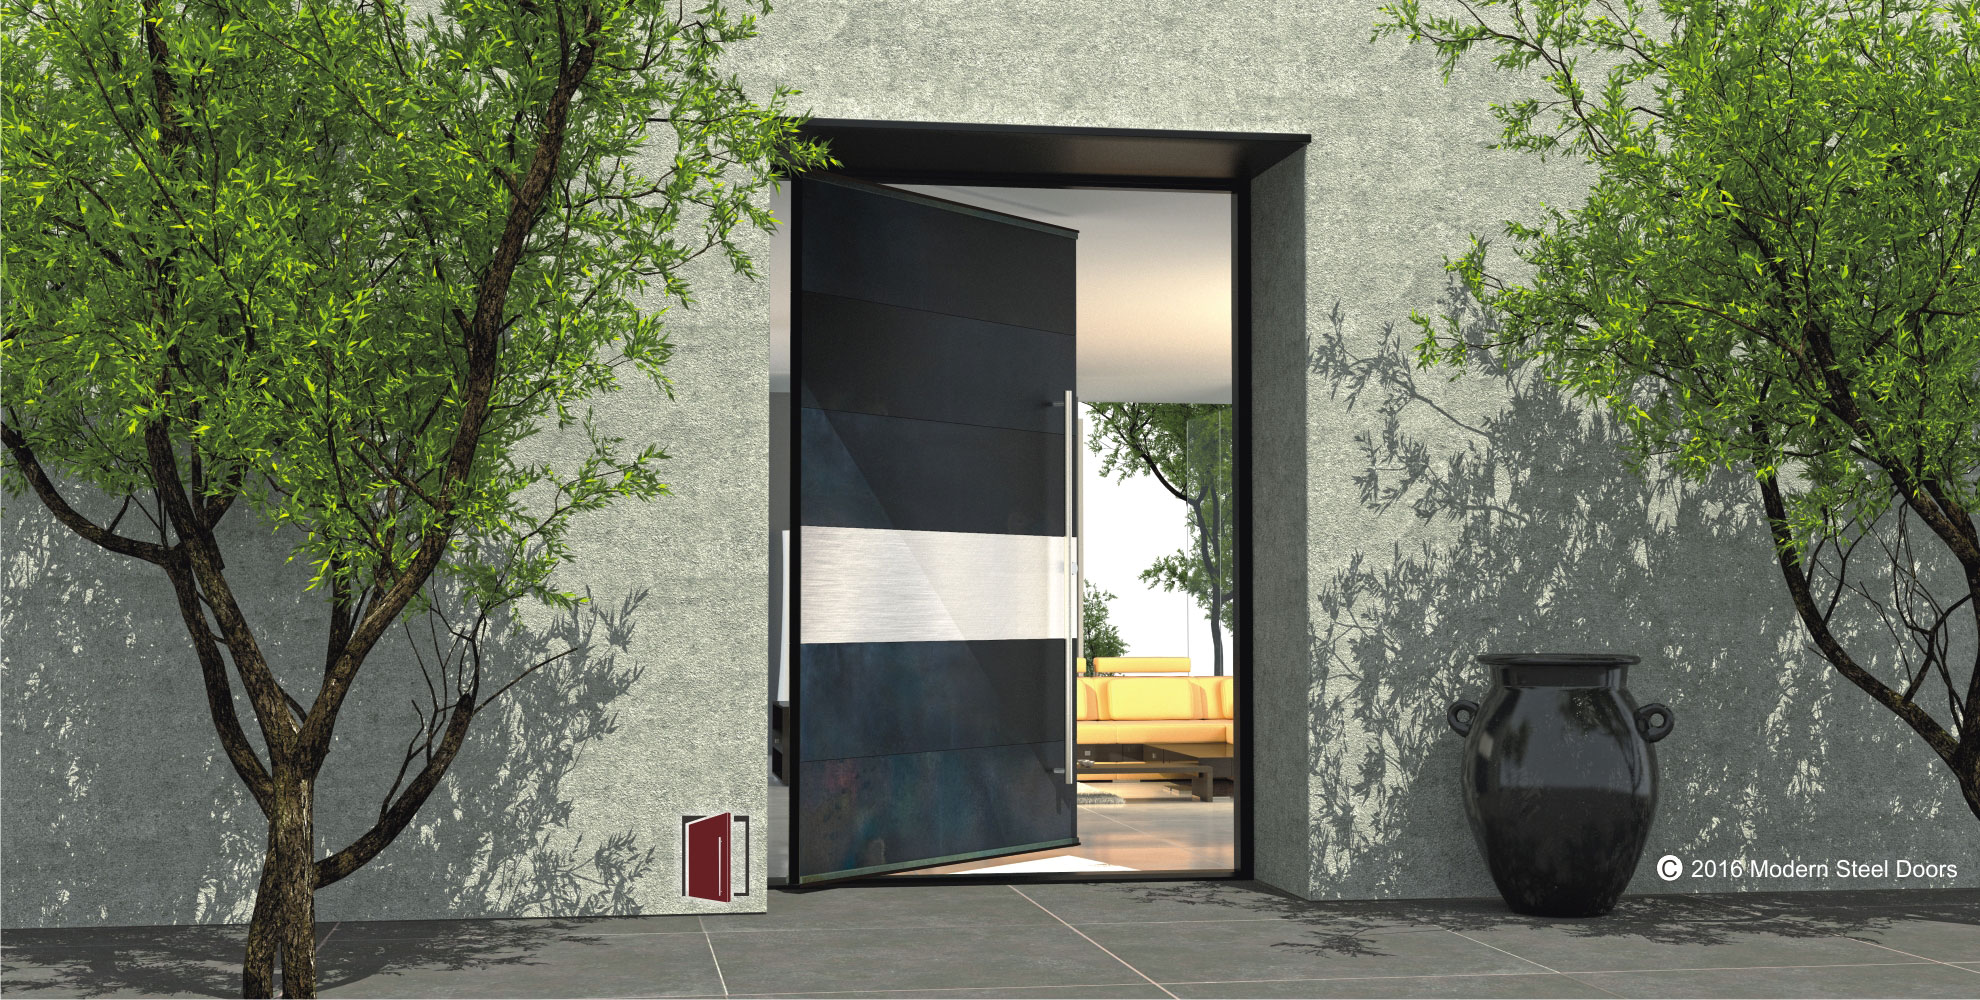 1000 #647938  Paneled Blackened Stainless Metal Door With 1 Brushed Stainless  save image Stainless Steel Entrance Doors 47371980